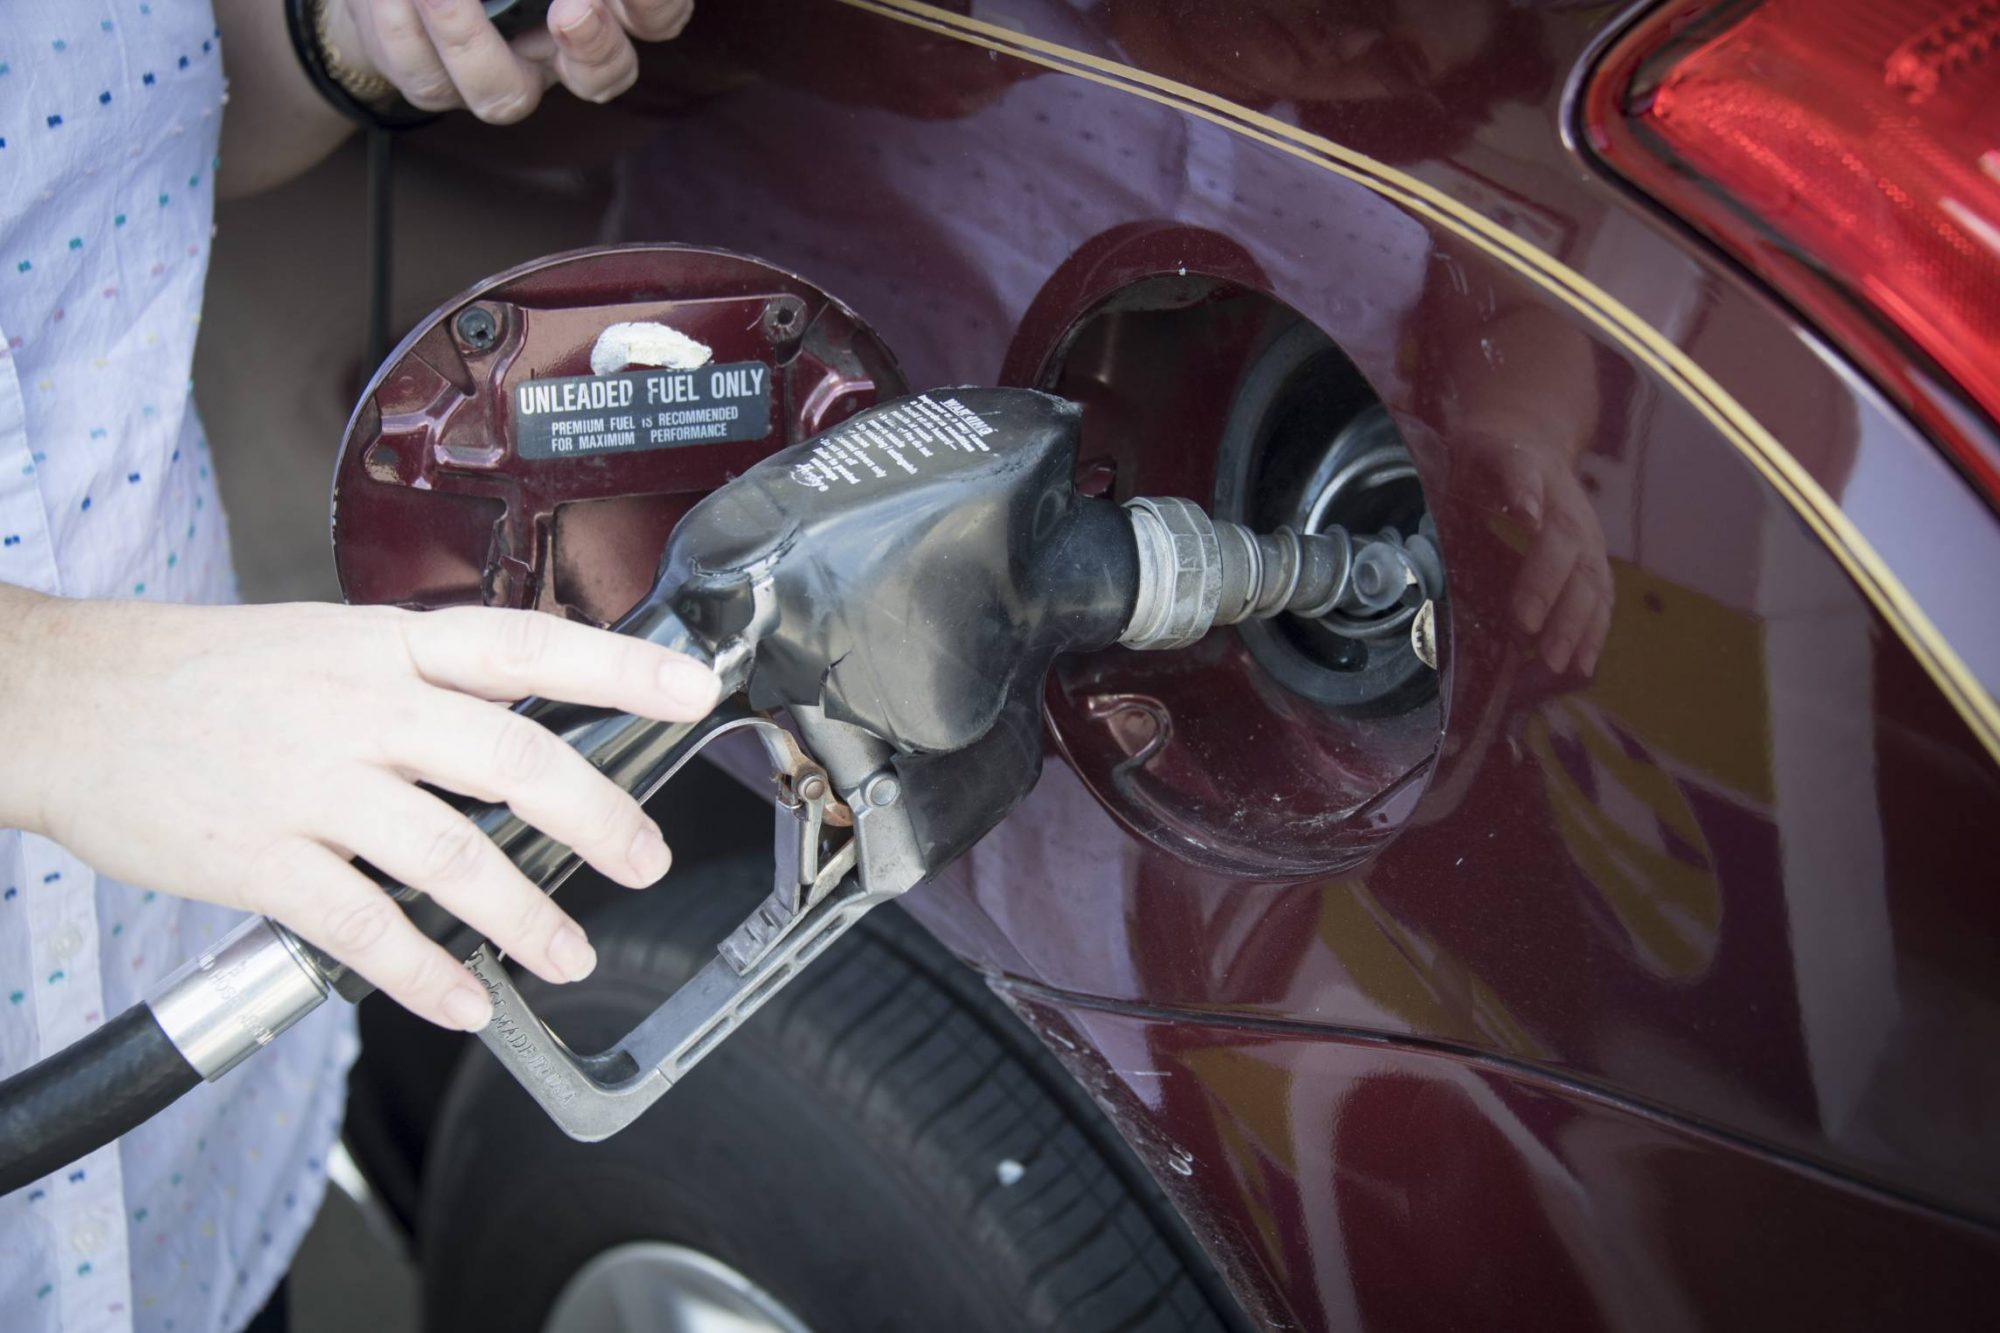 Woman's hand holding a pump nozzle in car fuel tank door.